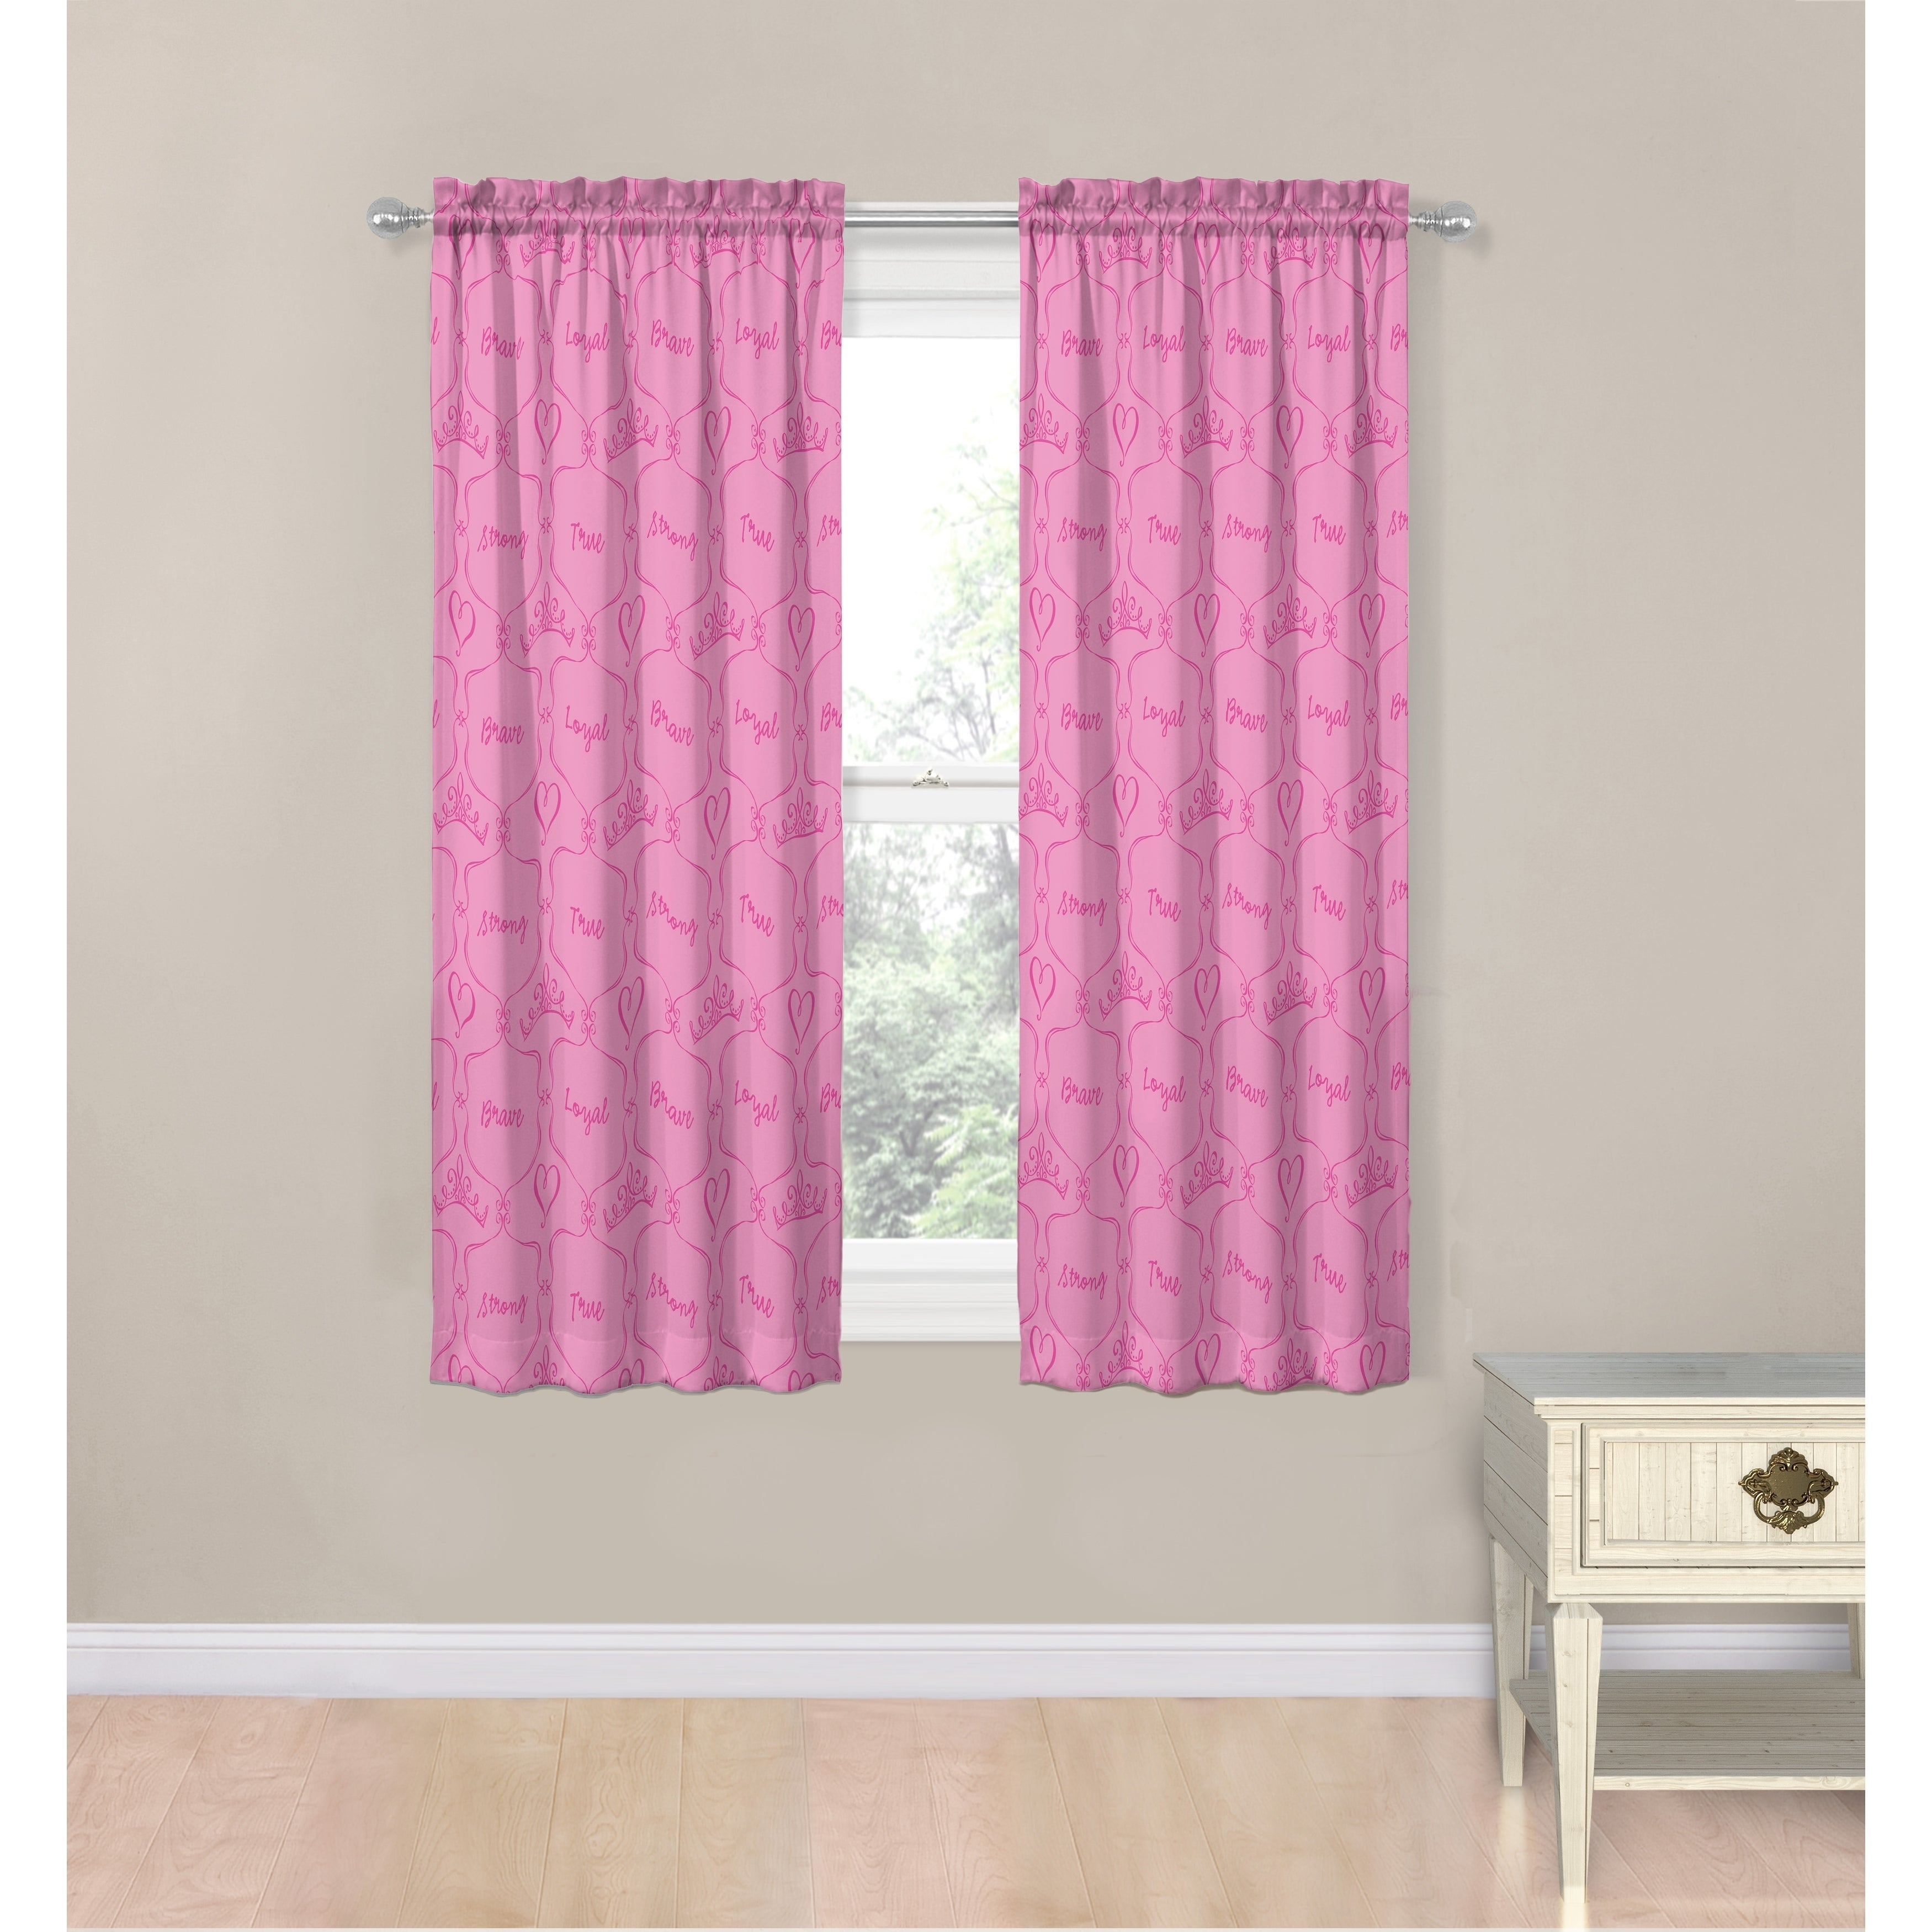 """Disney Princess Friendship Adventures 63"""" Decorative Curtain Set Pertaining To Classic Hotel Quality Water Resistant Fabric Curtains Set With Tiebacks (View 10 of 20)"""